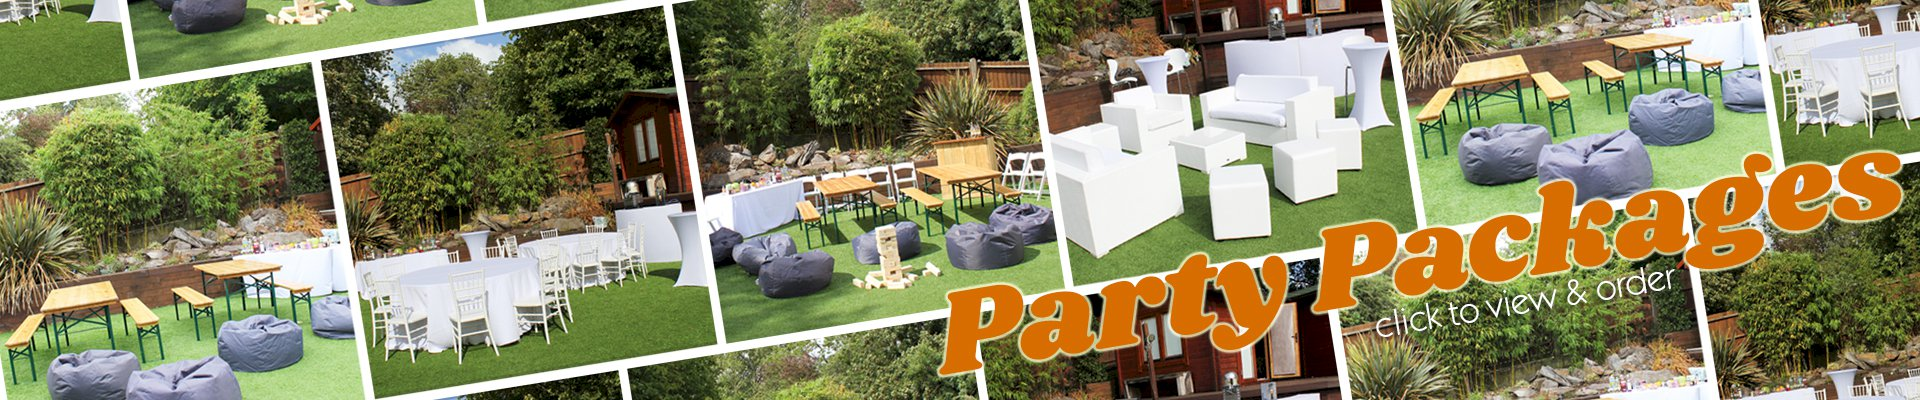 Party Furniture Hire Packages